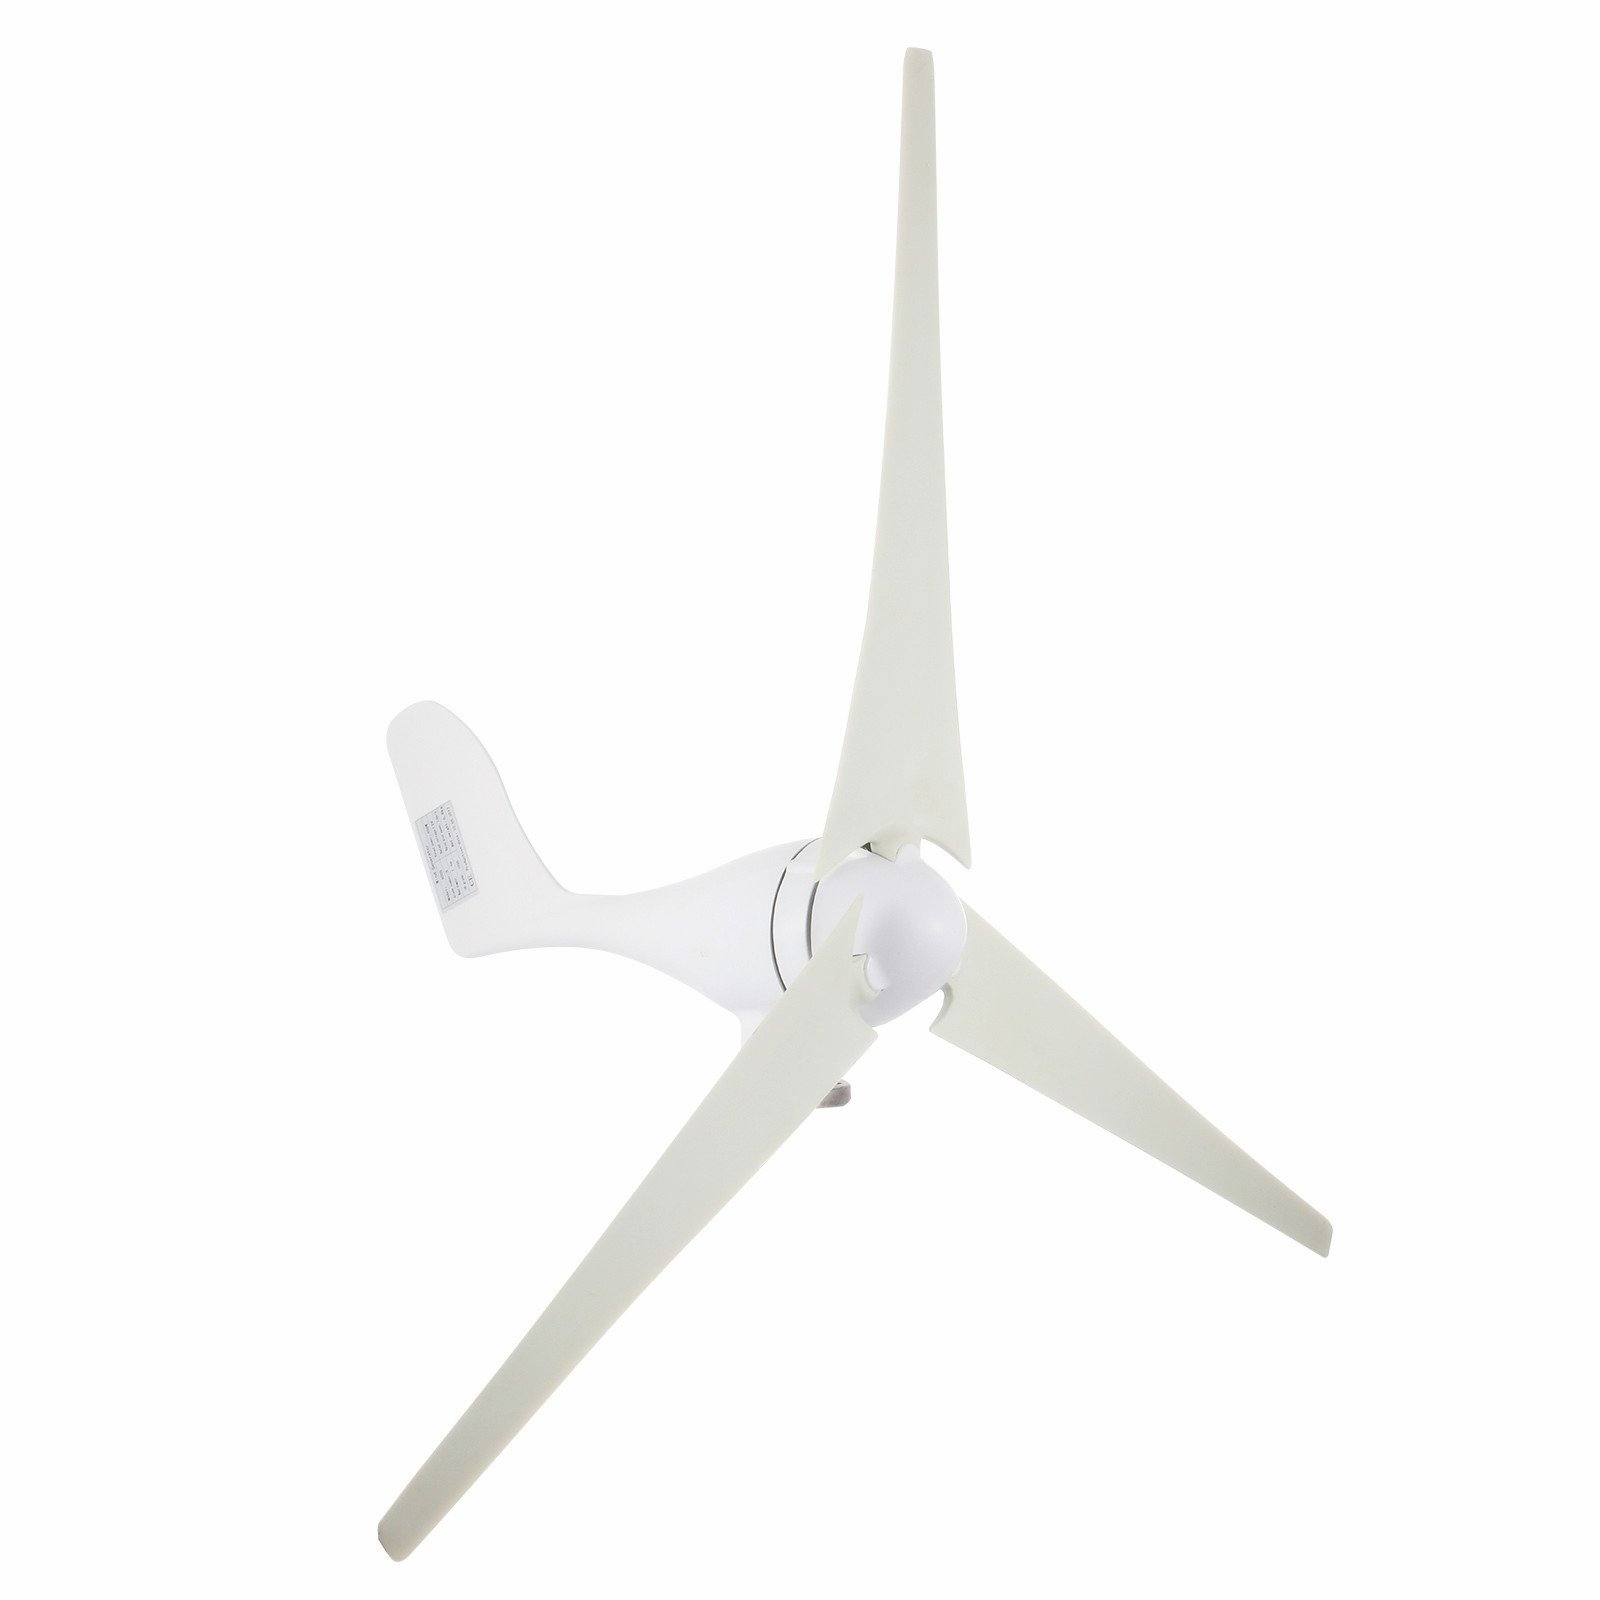 Popsport Wind Generator 400W Hybrid Wind Turbine Generator DC 12V/24V Turbine Wind Generator 3 Blades Light and Powerful Wind Generator Kit for Home Use (400W) by Popsport